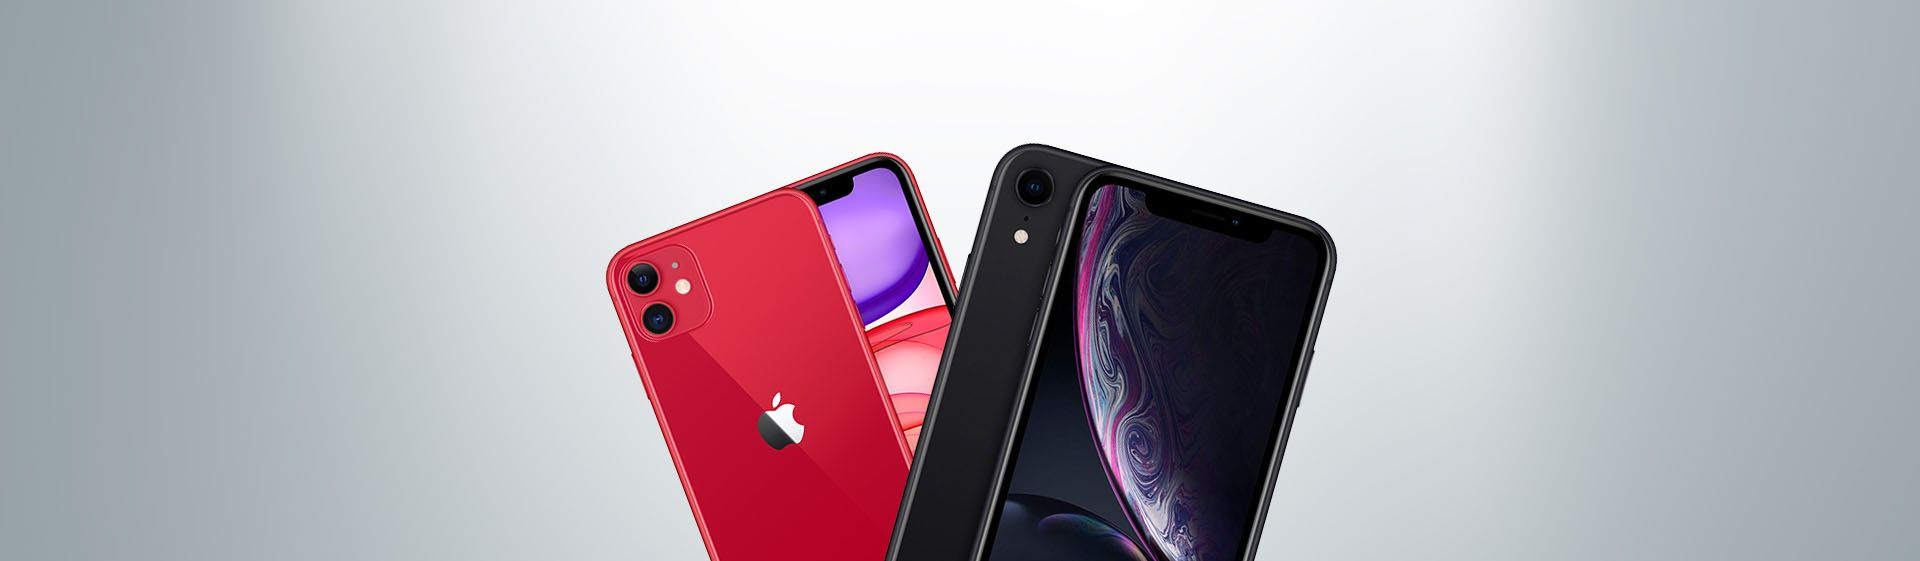 iPhone XR vs iPhone 11: o que muda na ficha técnica dos celulares Apple?